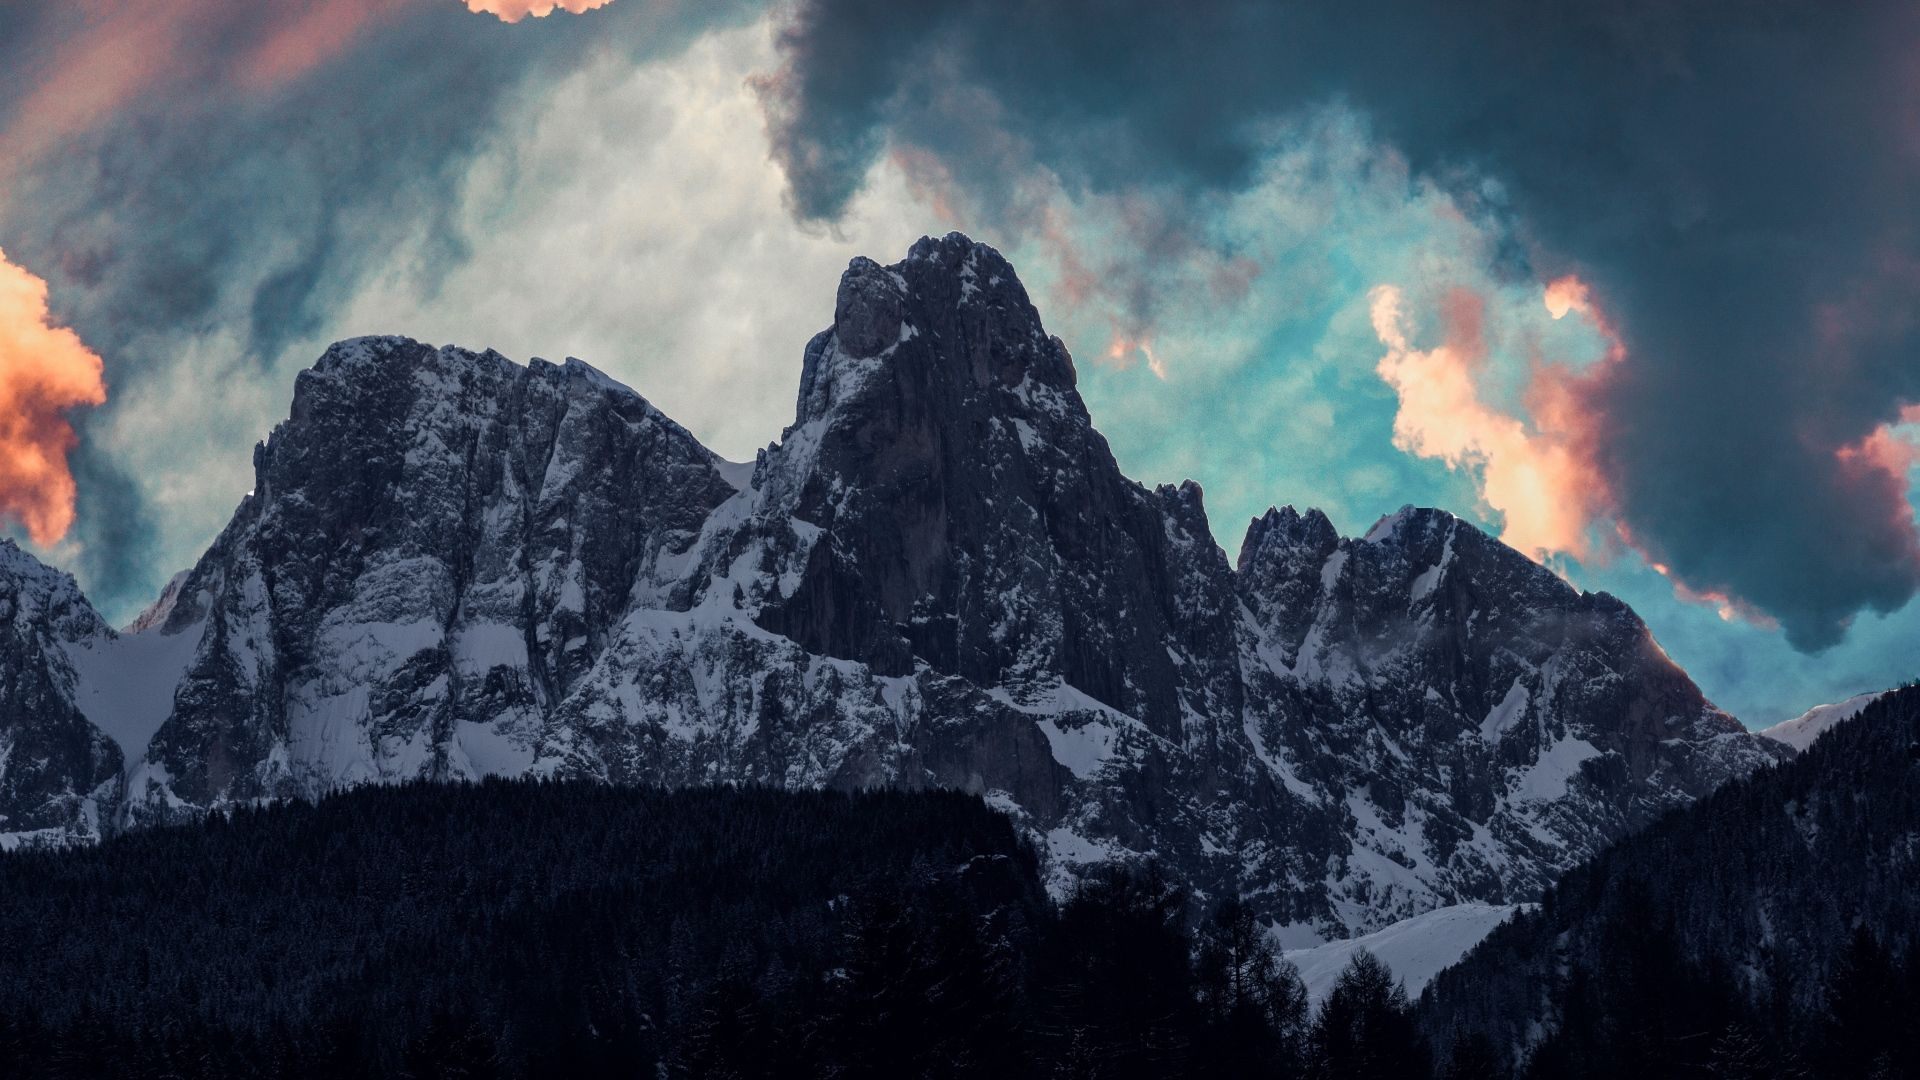 Download Wallpaper 1920x1080 Mountains Clouds Trees Snow Full 1920x1080